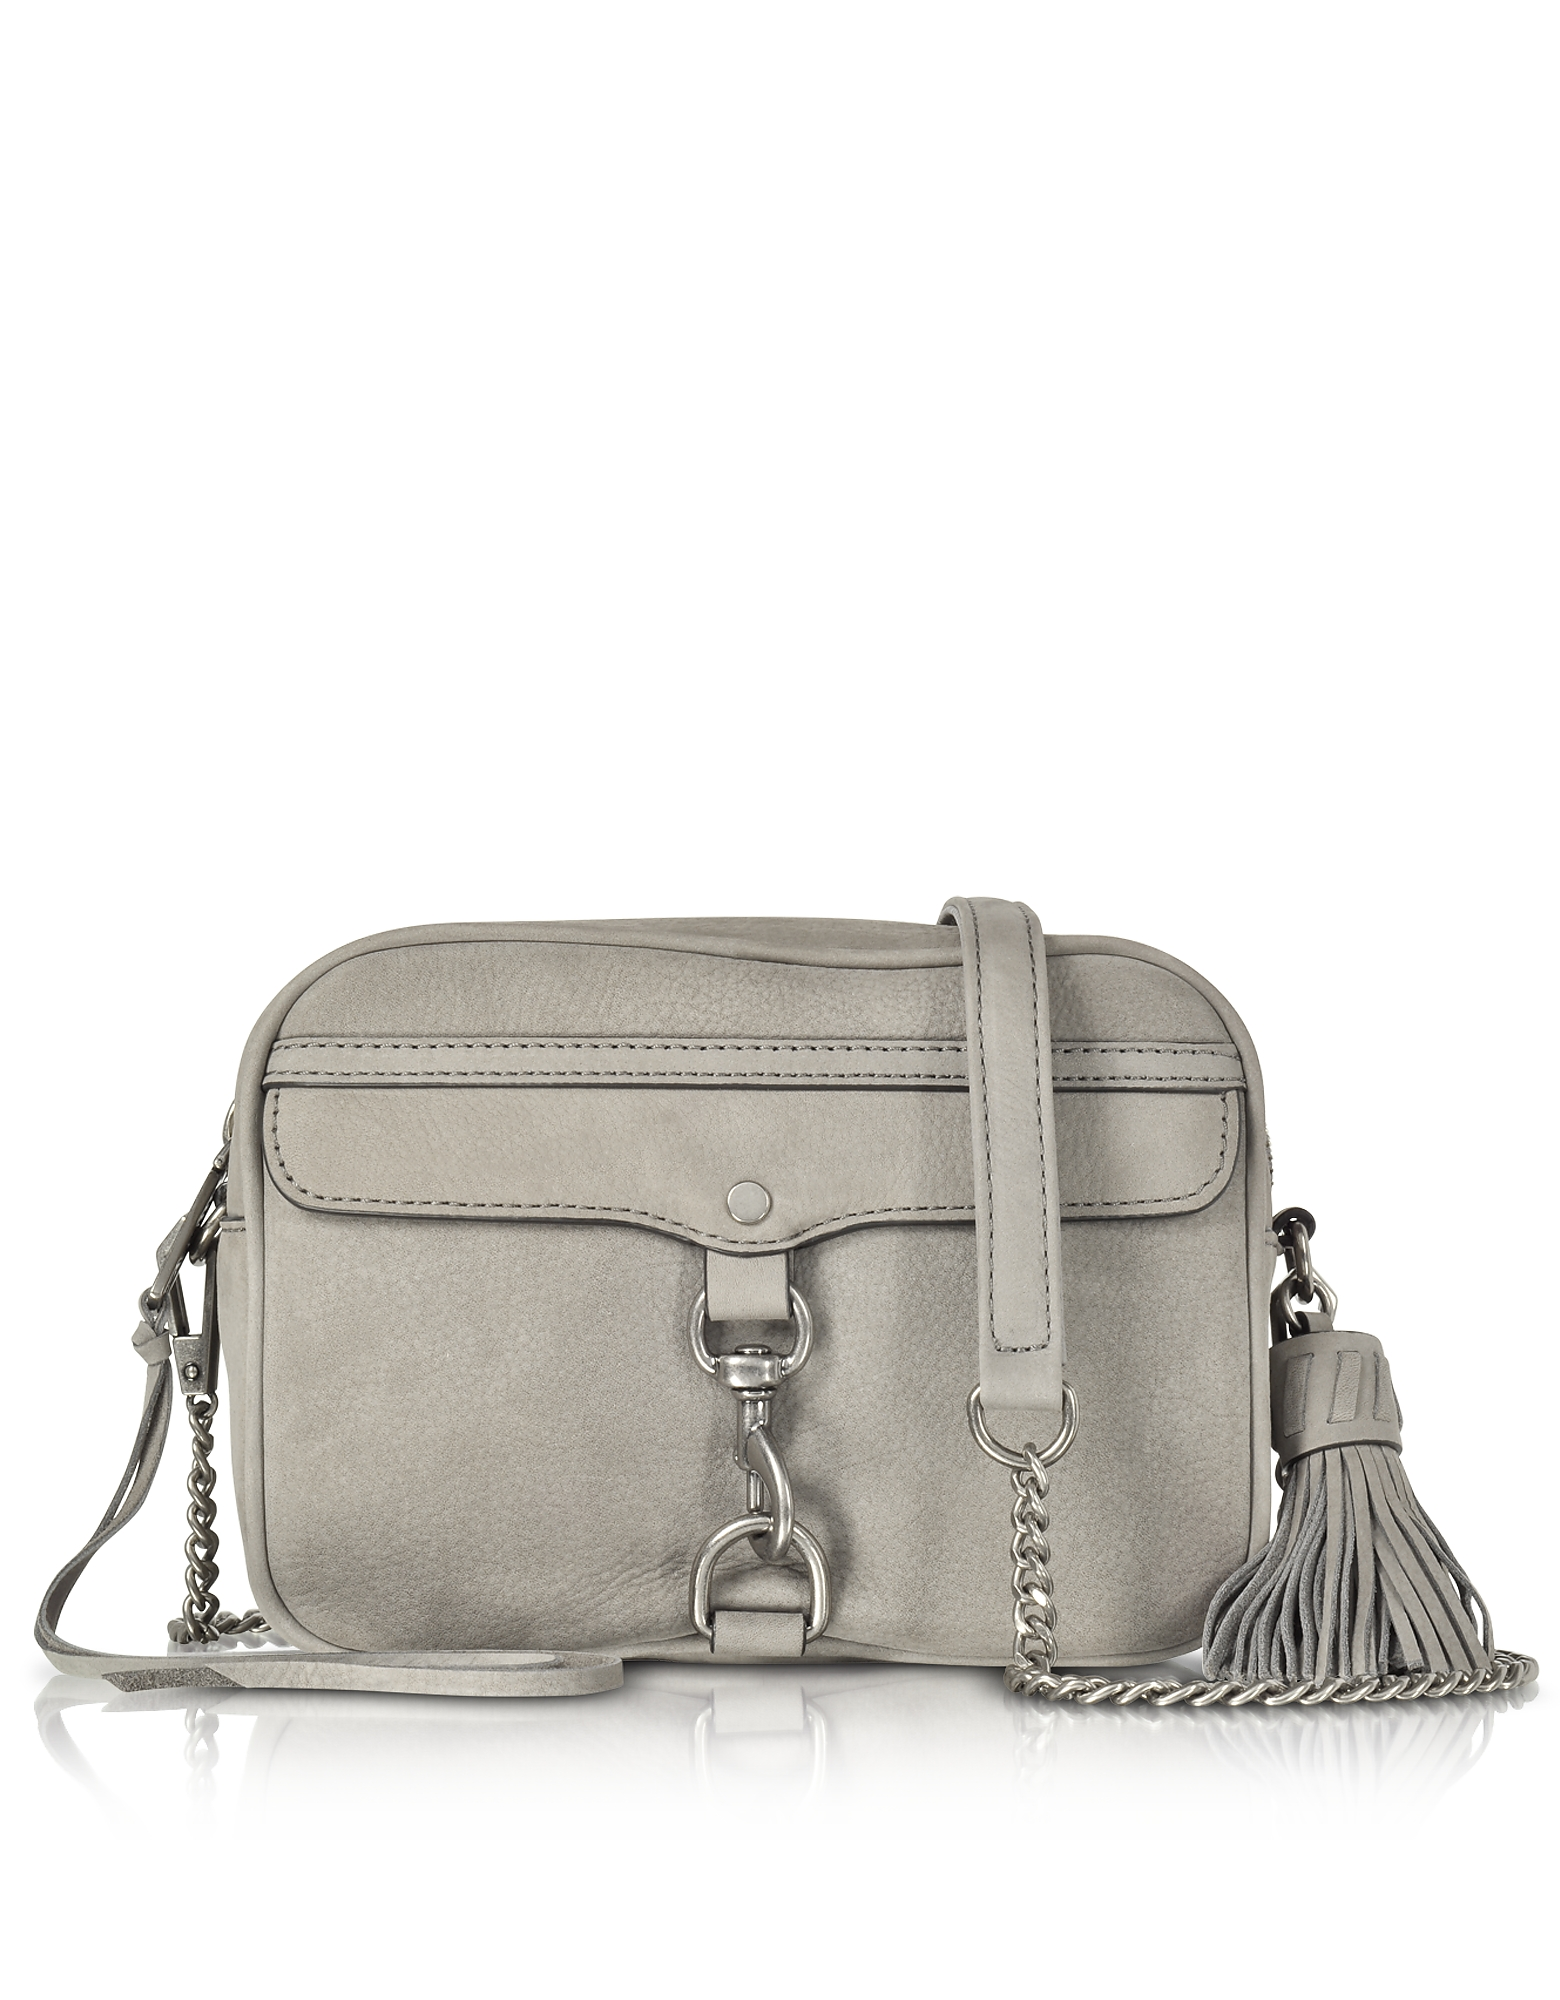 Rebecca Minkoff Gray Nubuck Large M.A.B. Camera Bag